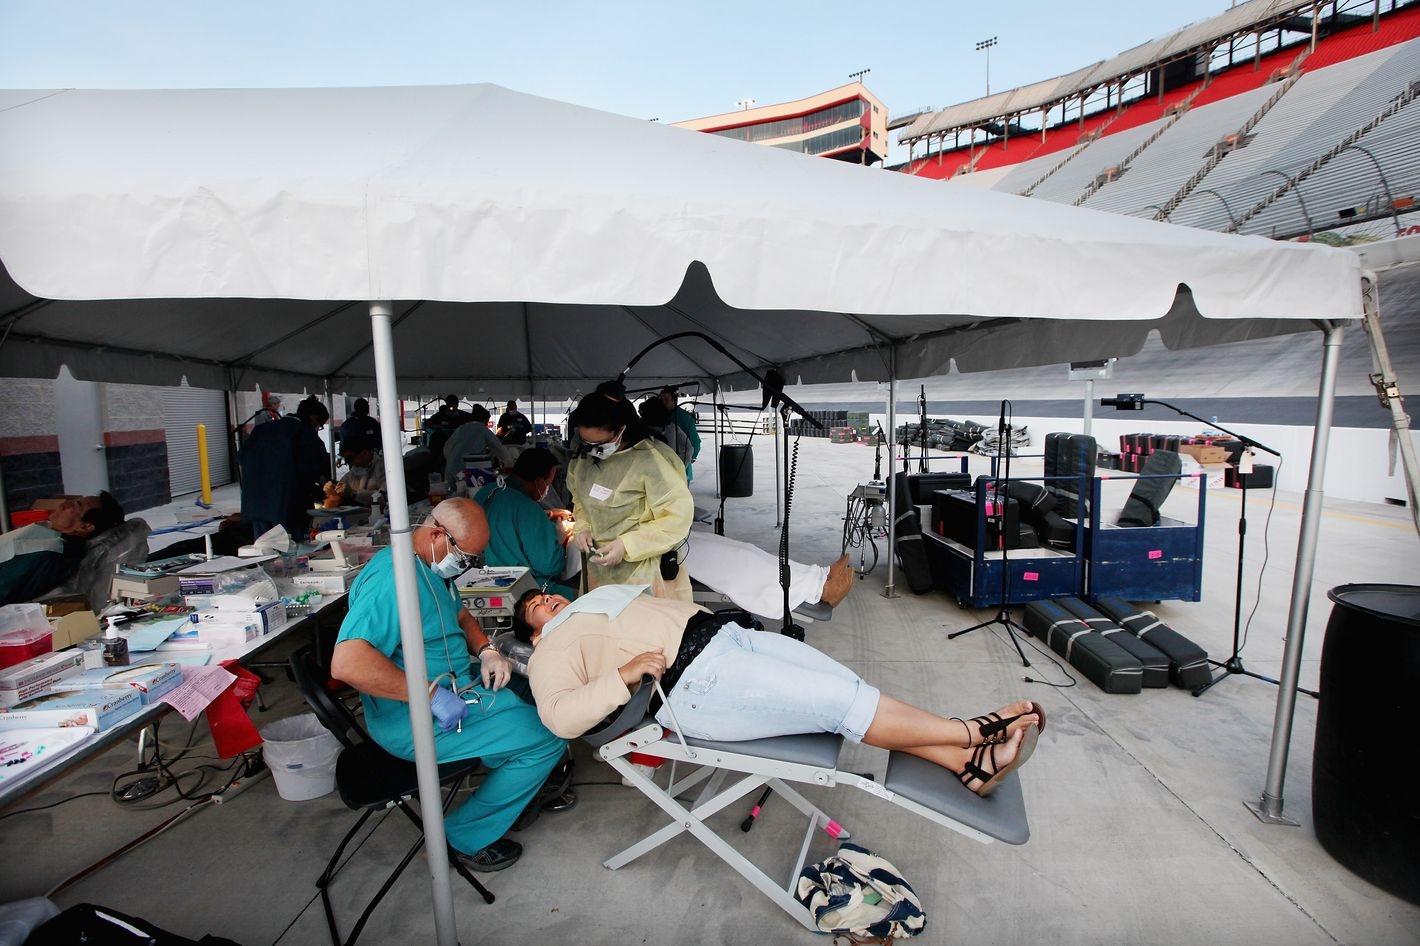 Uninsured patient Patricia Breto receives dental care from volunteers Dr. David Reczek of Boston and dental student Yasmin Gonzalez from Champaign, Illinois at the Remote Area Medical (RAM) free clinic at the Bristol Motor Speedway, located in the mountains of Appalachia, on April 15, 2012 in Bristol, Tennessee. More than one thousand uninsured and underinsured people received free medical, dental, vision and pulmonary treatments provided by volunteer doctors, dentists, optometrists, nurses and support staff during the three day clinic in the foothills of the Appalachian Mountains, one of the poorest regions in the country. The U.S. Supreme Court recently heard arguments over the constitutionality of President Obama's sweeping health care overhaul.